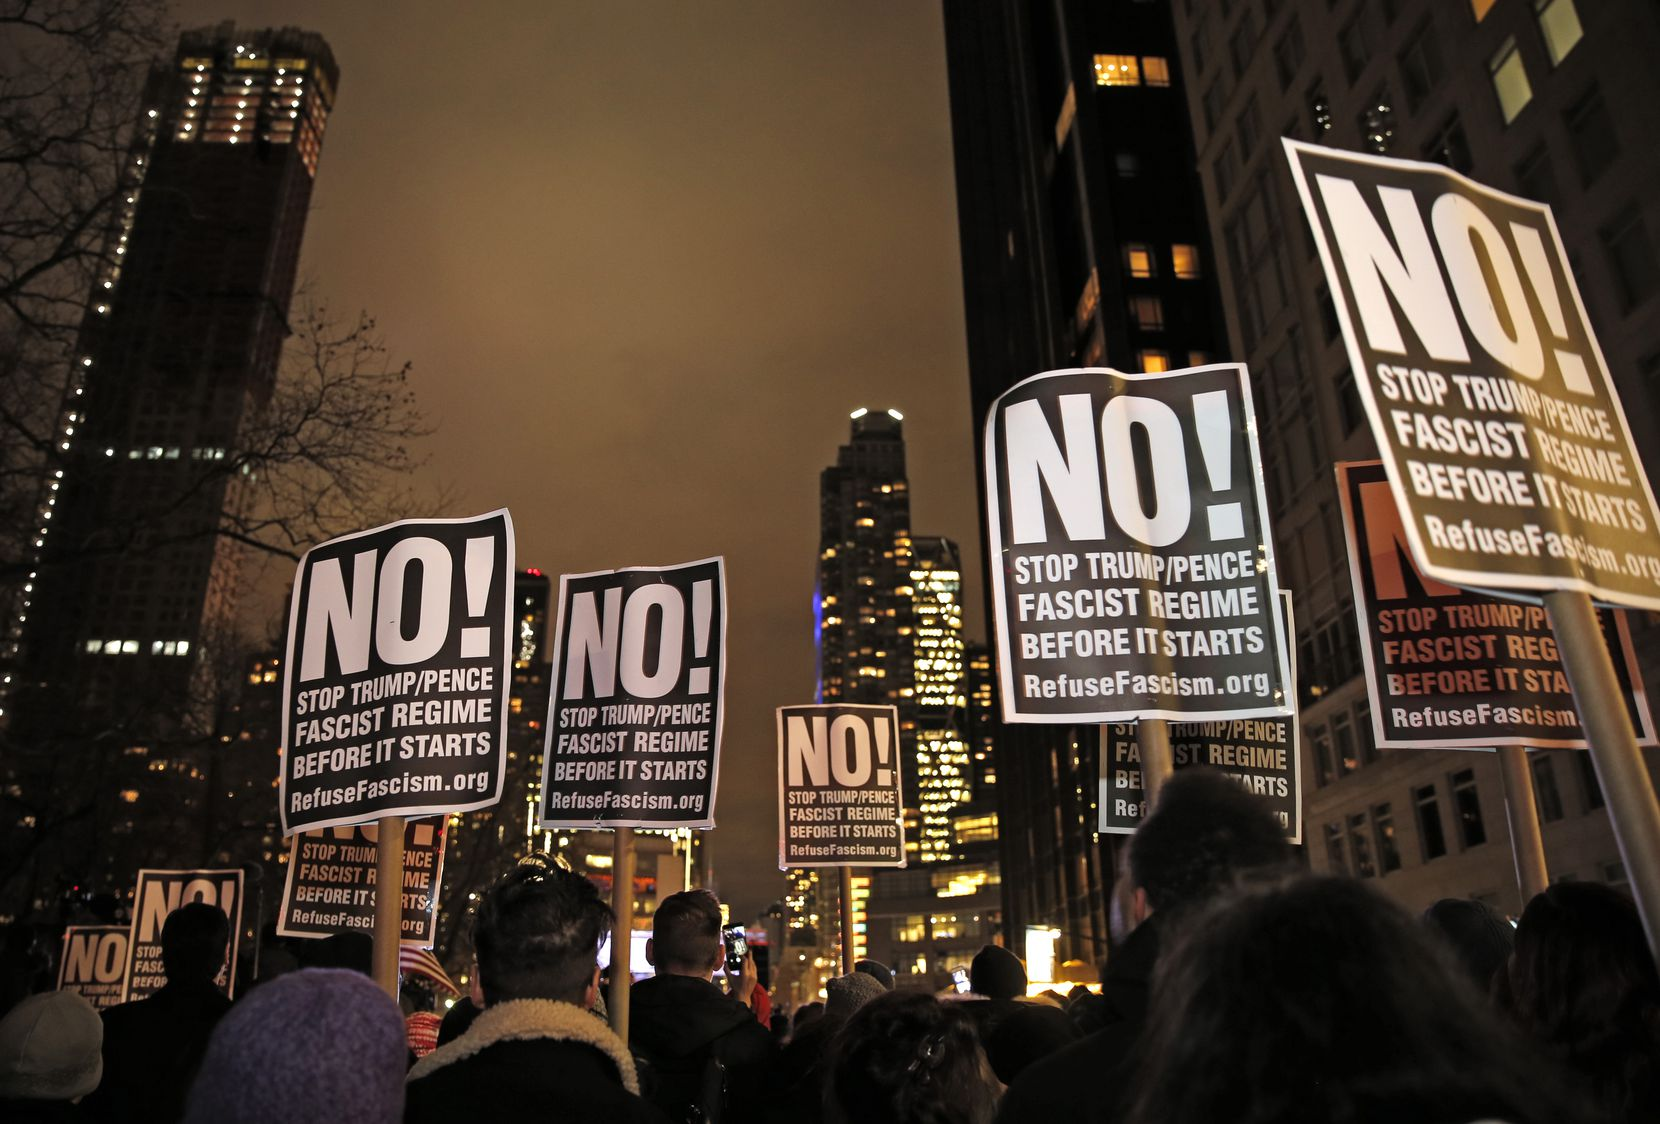 Protesters hold signs as they listen to speakers at an anti-Trump rally hosted by filmmaker Michael Moore in front of the Trump International Hotel, Thursday, Jan. 19, 2017, in New York. President-elect Donald Trump, a New Yorker, is scheduled to take the oath of office Friday in Washington.